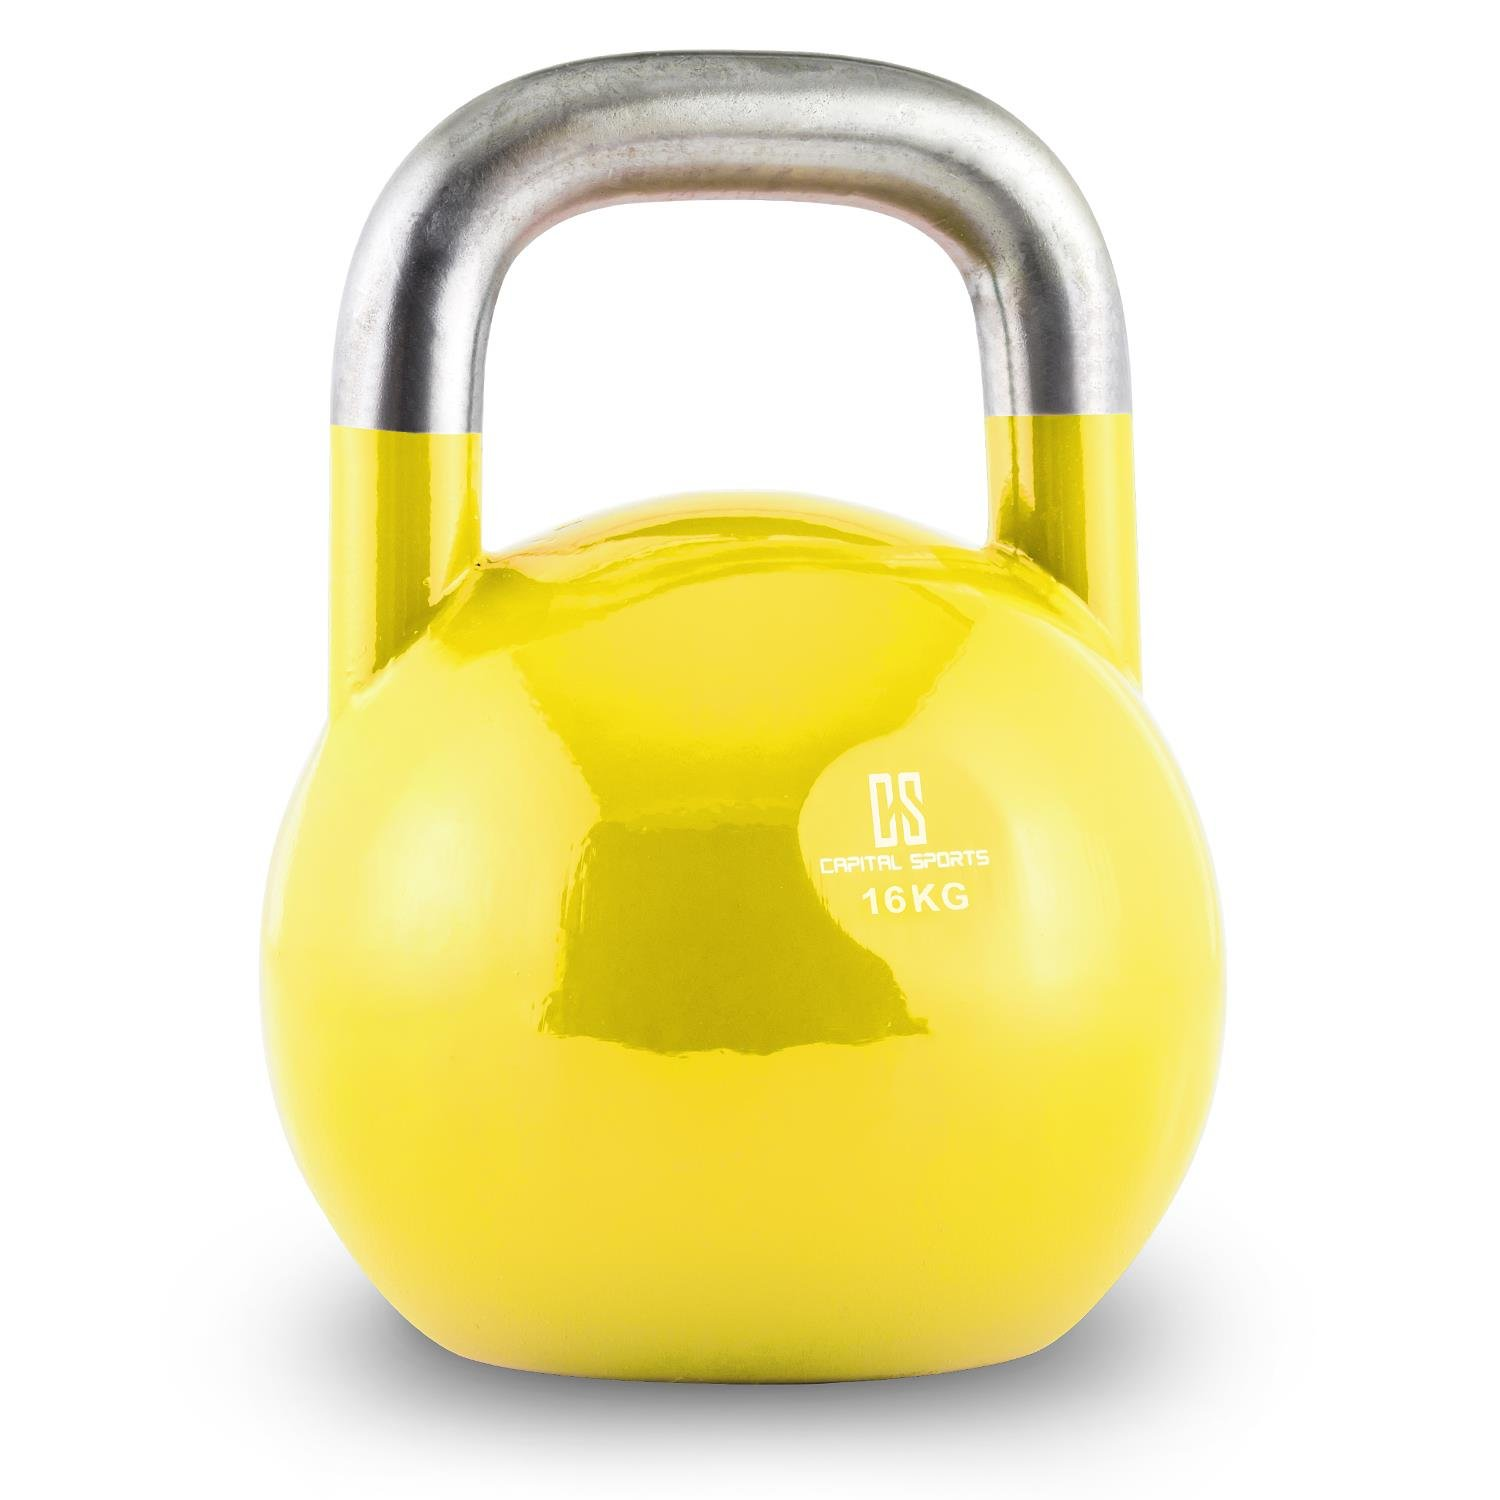 Capital Sports Competition Kettlebell